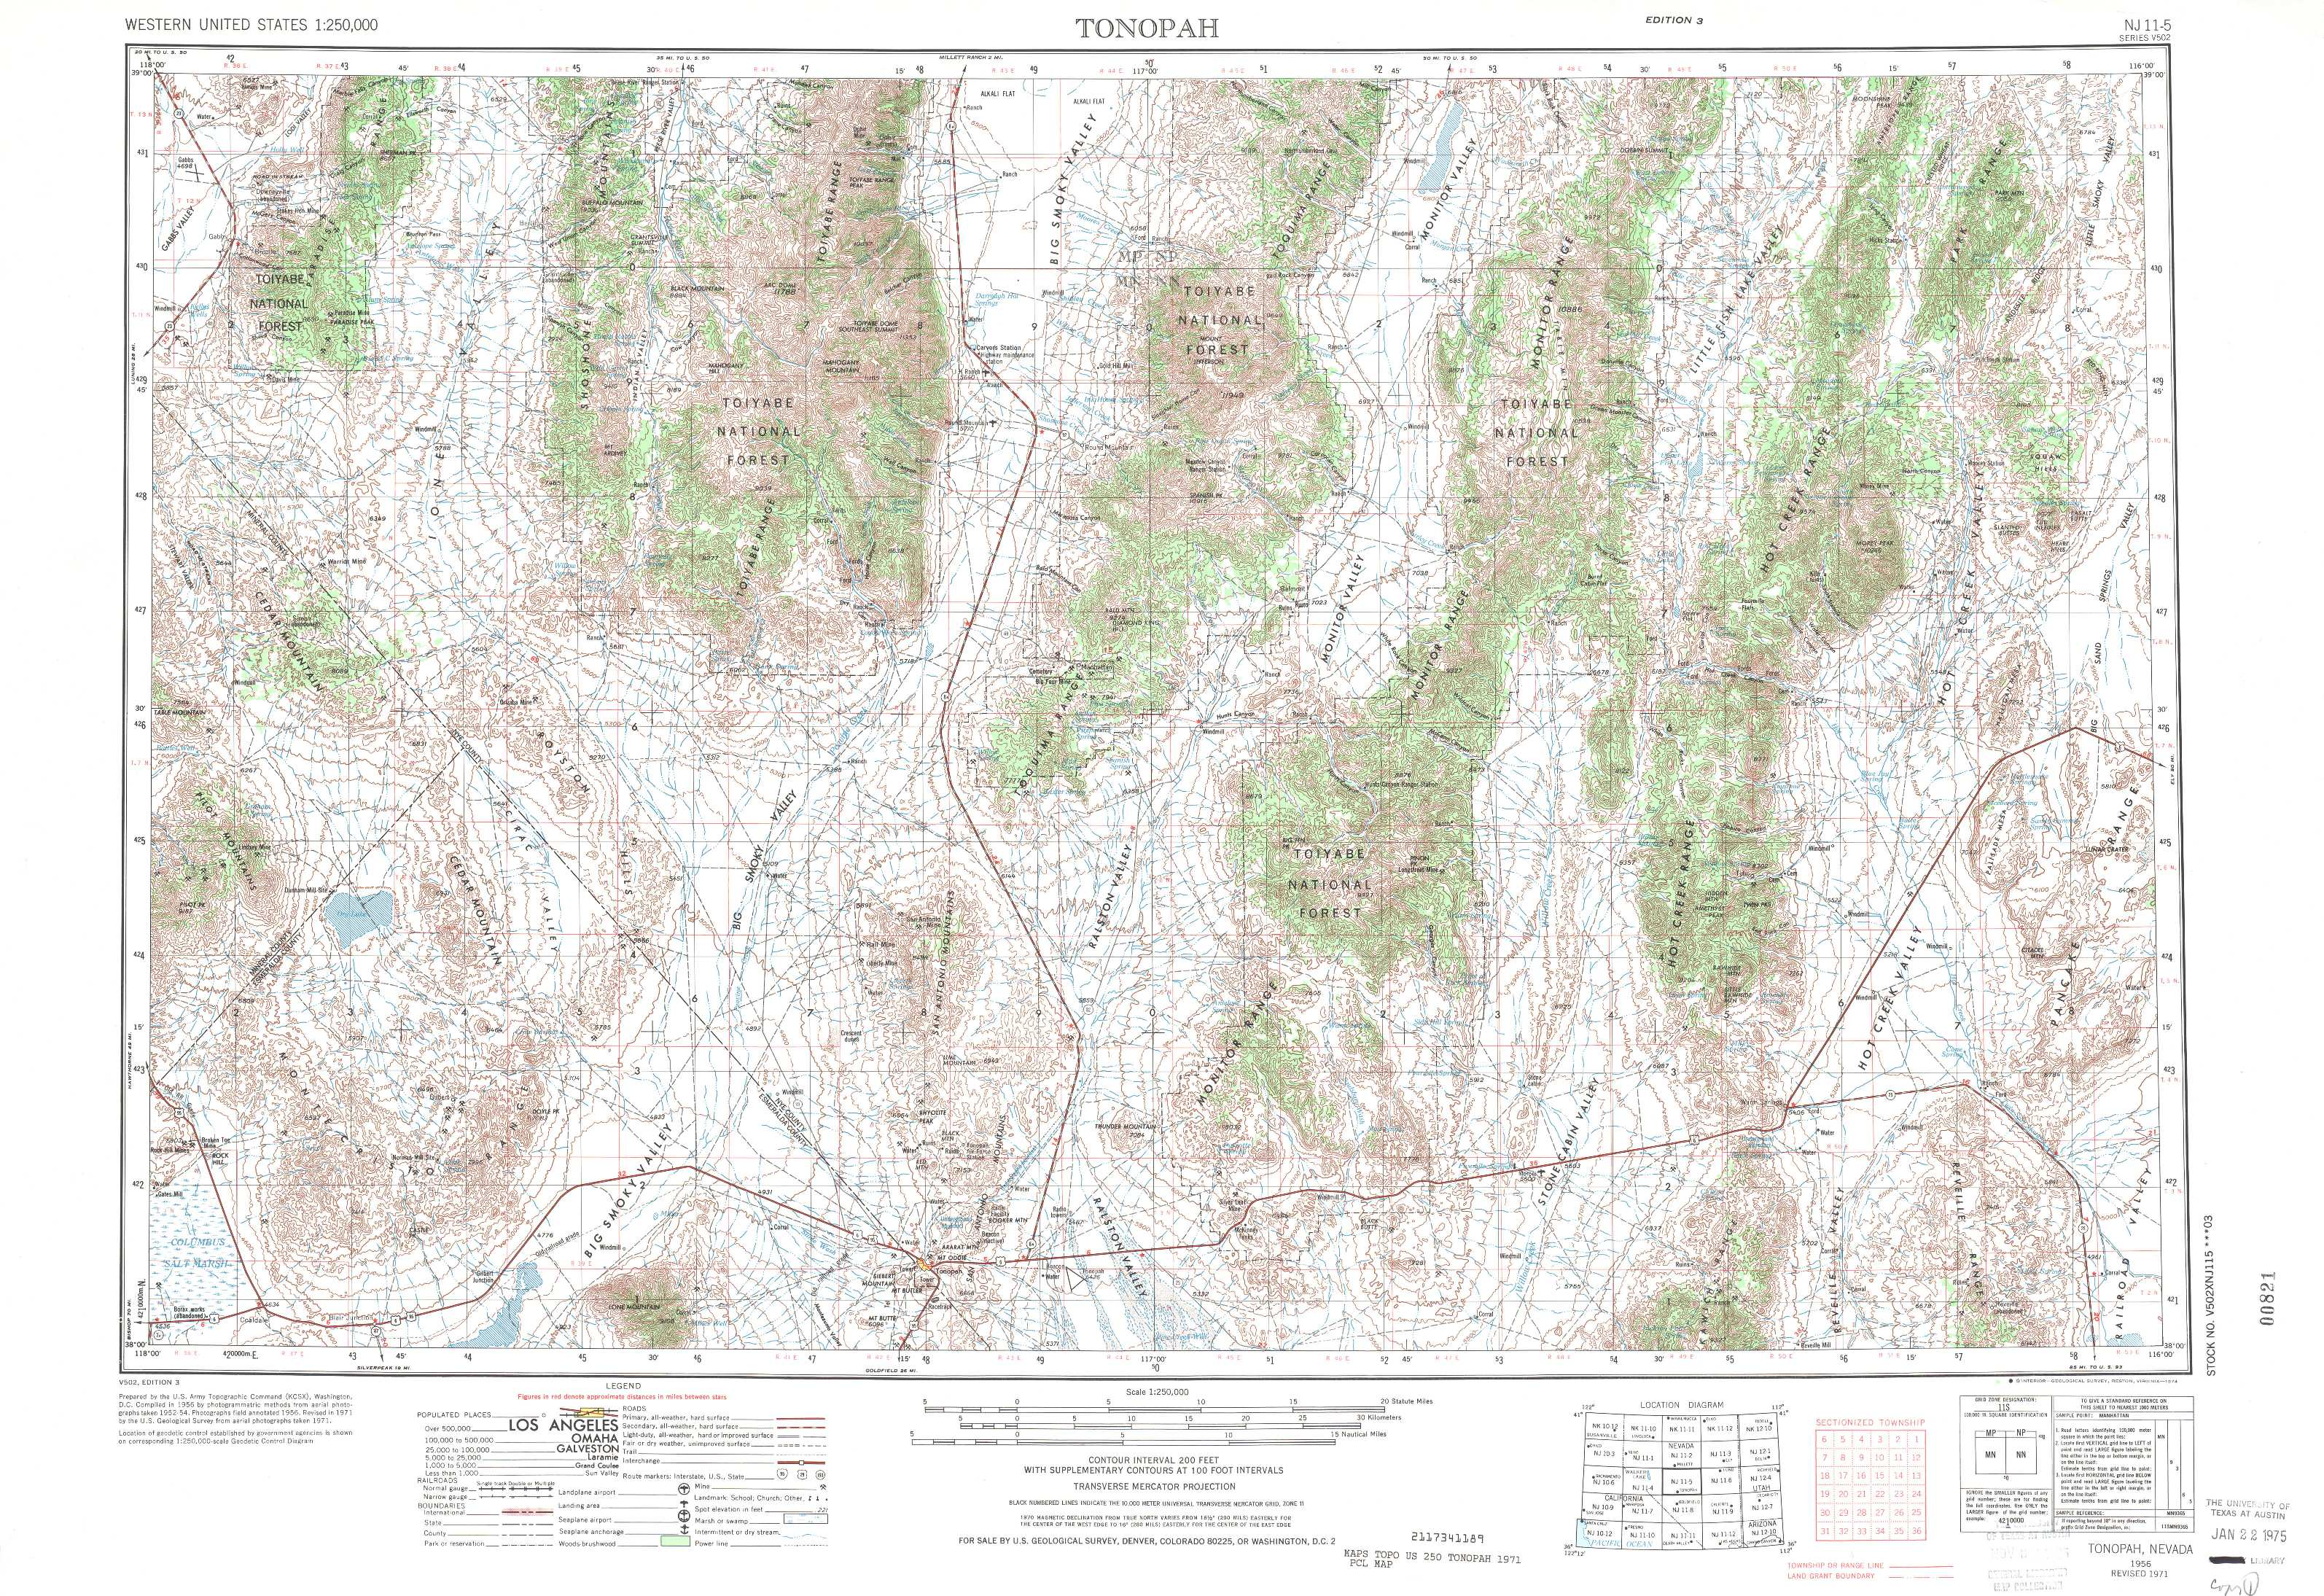 Tonopah Topographic Maps NV  USGS Topo Quad 38116a1 At 1